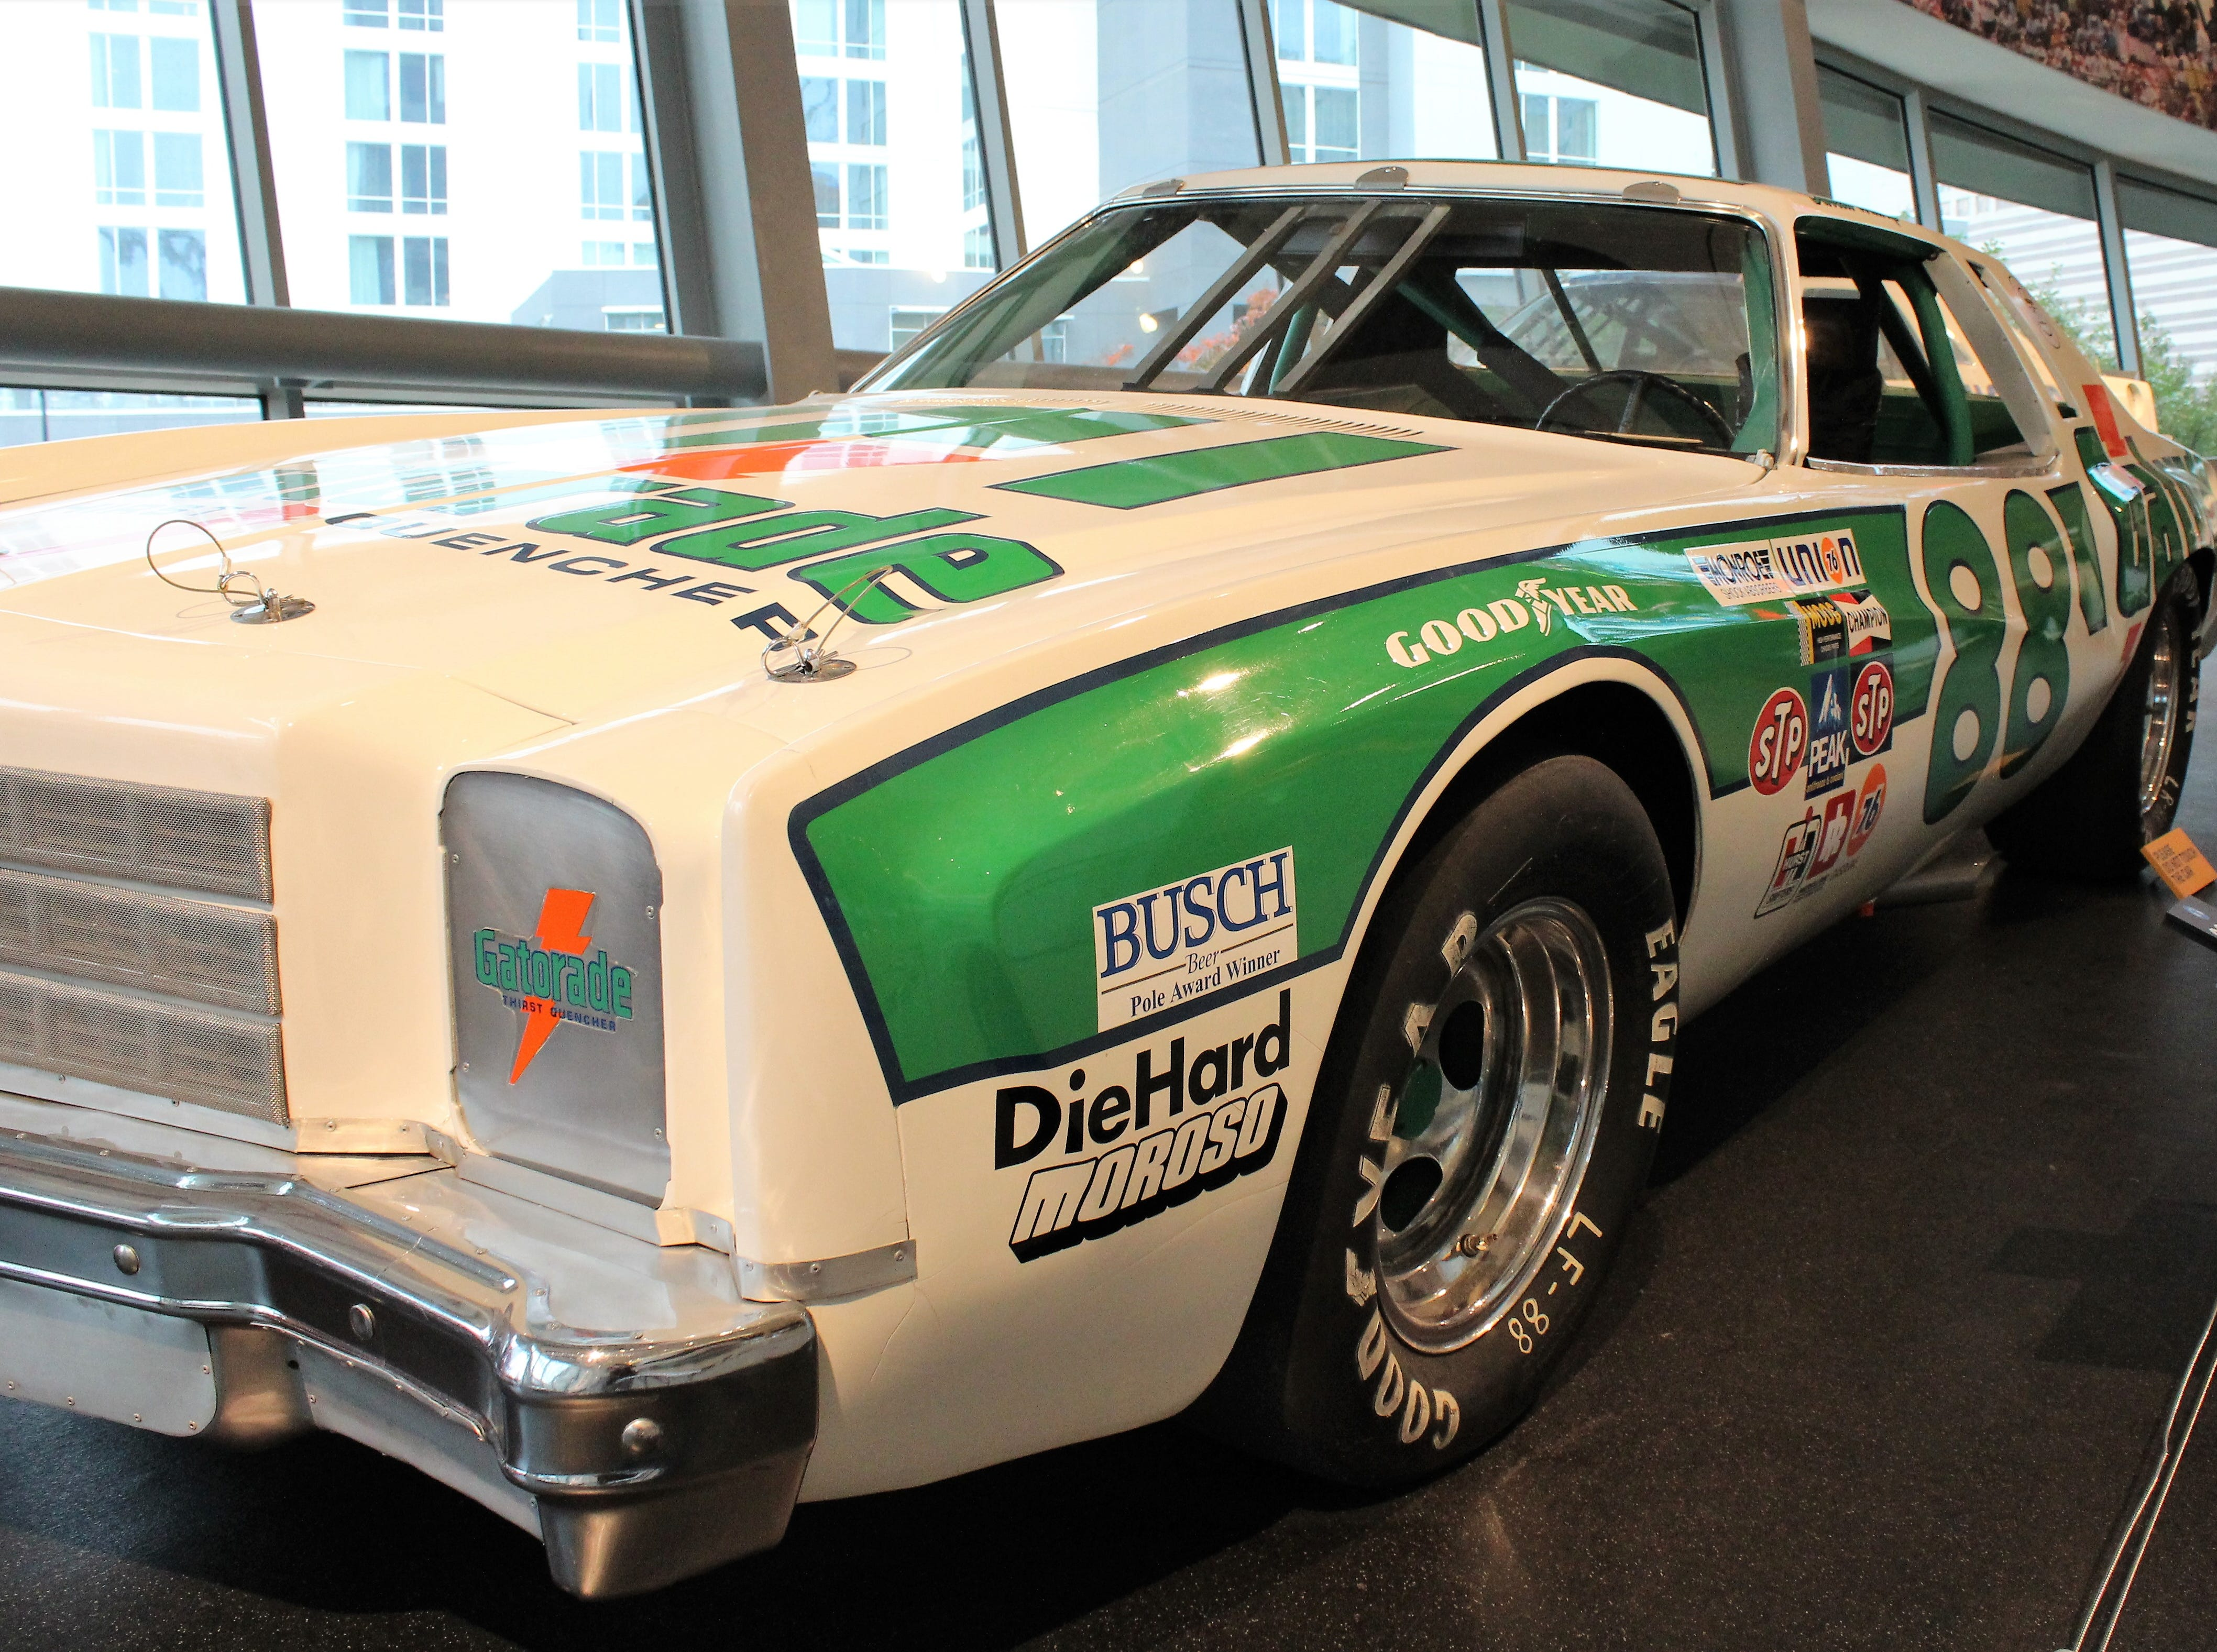 Bertha was driven to glory by Darrell Waltrip. It's displayed on Glory Road at the NASCAR Hall of Fame in Charlotte, N.C.